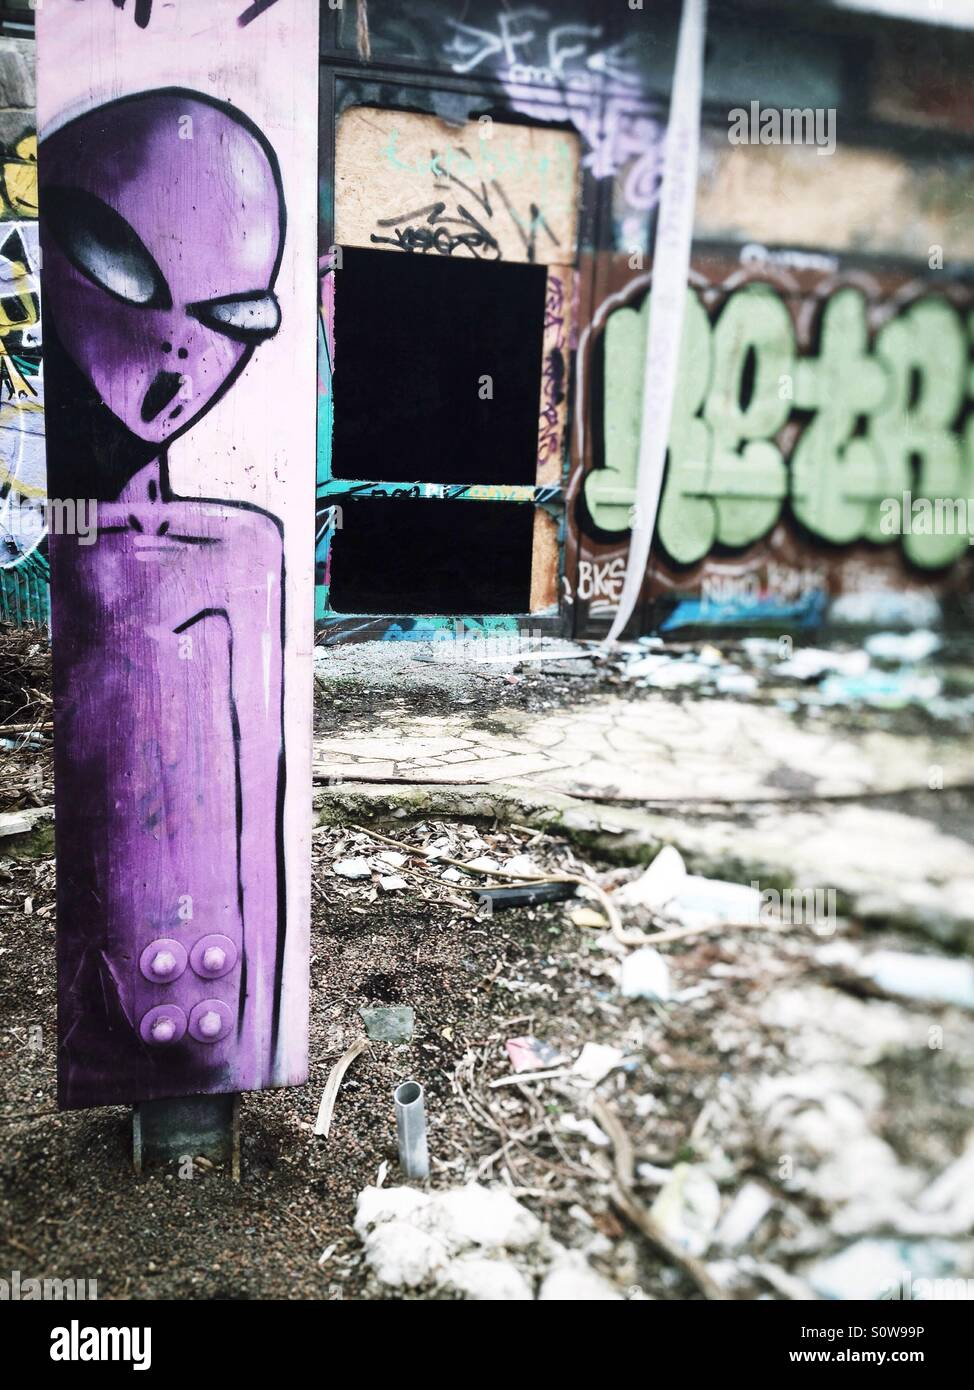 Alien Graffiti At The Abandoned Swimming Pool Blub In The Berlin Stock Photo Alamy